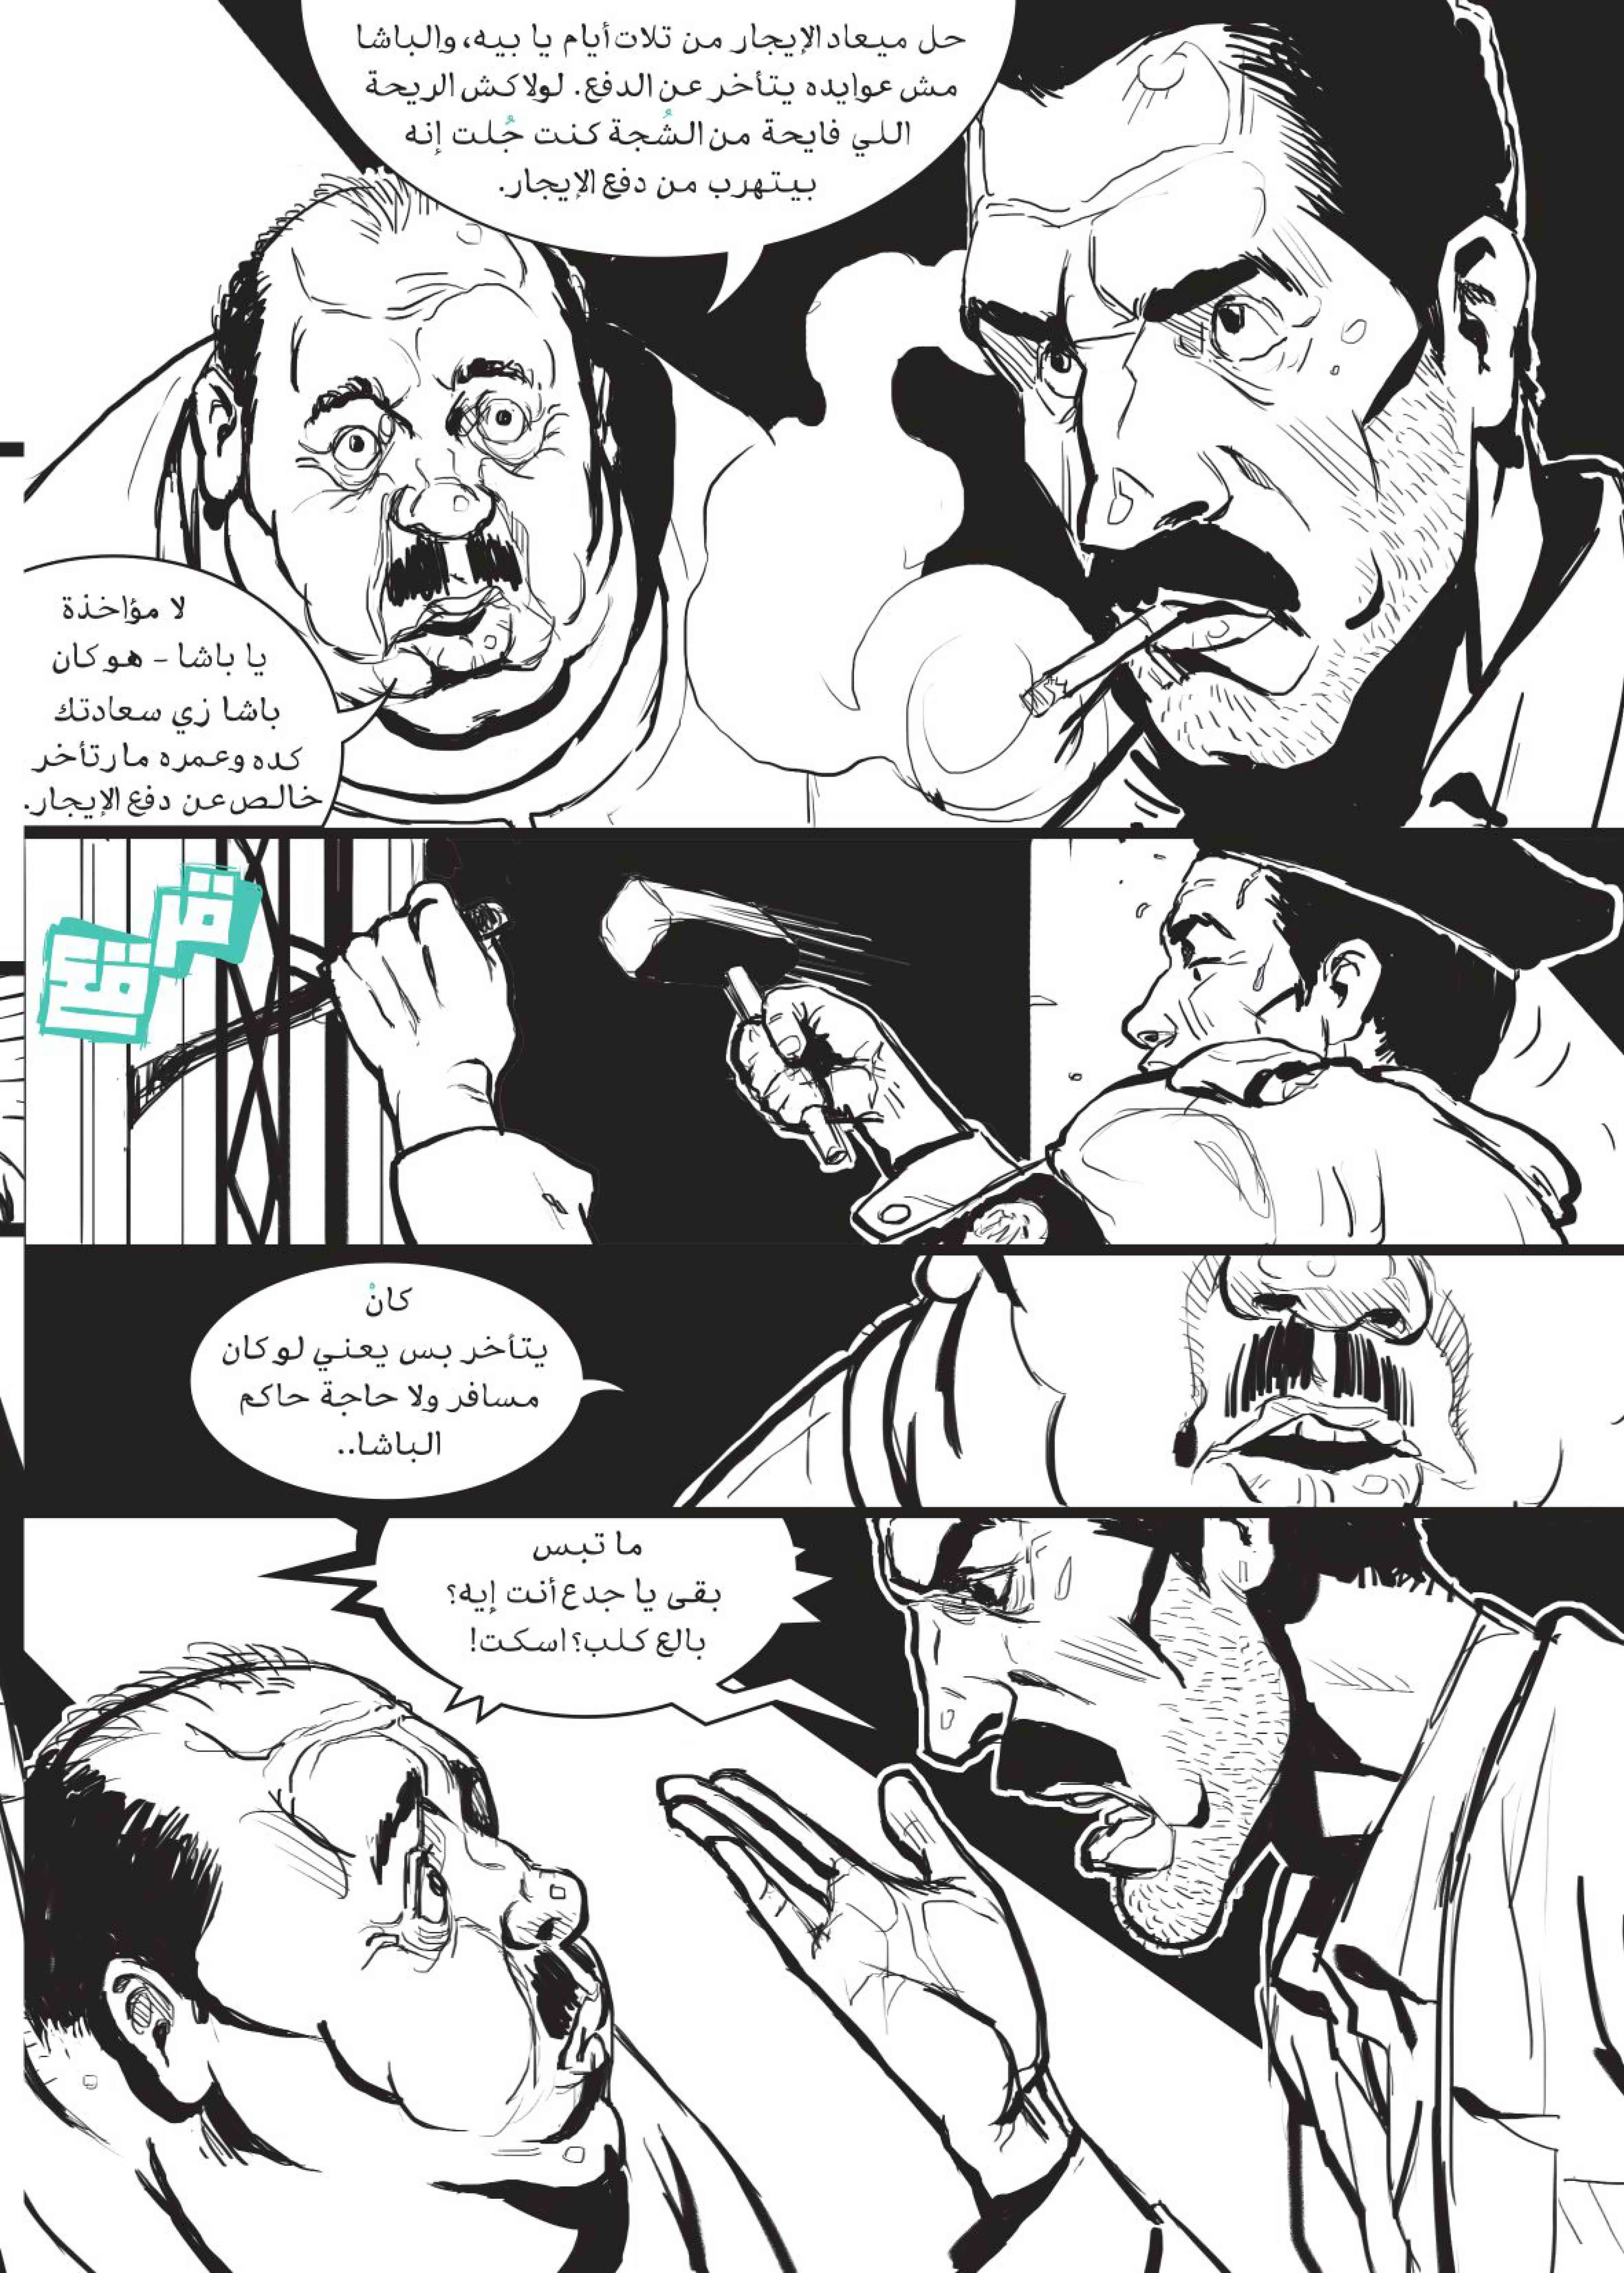 works_on_comics_in_the_arab_countries_3.jpg